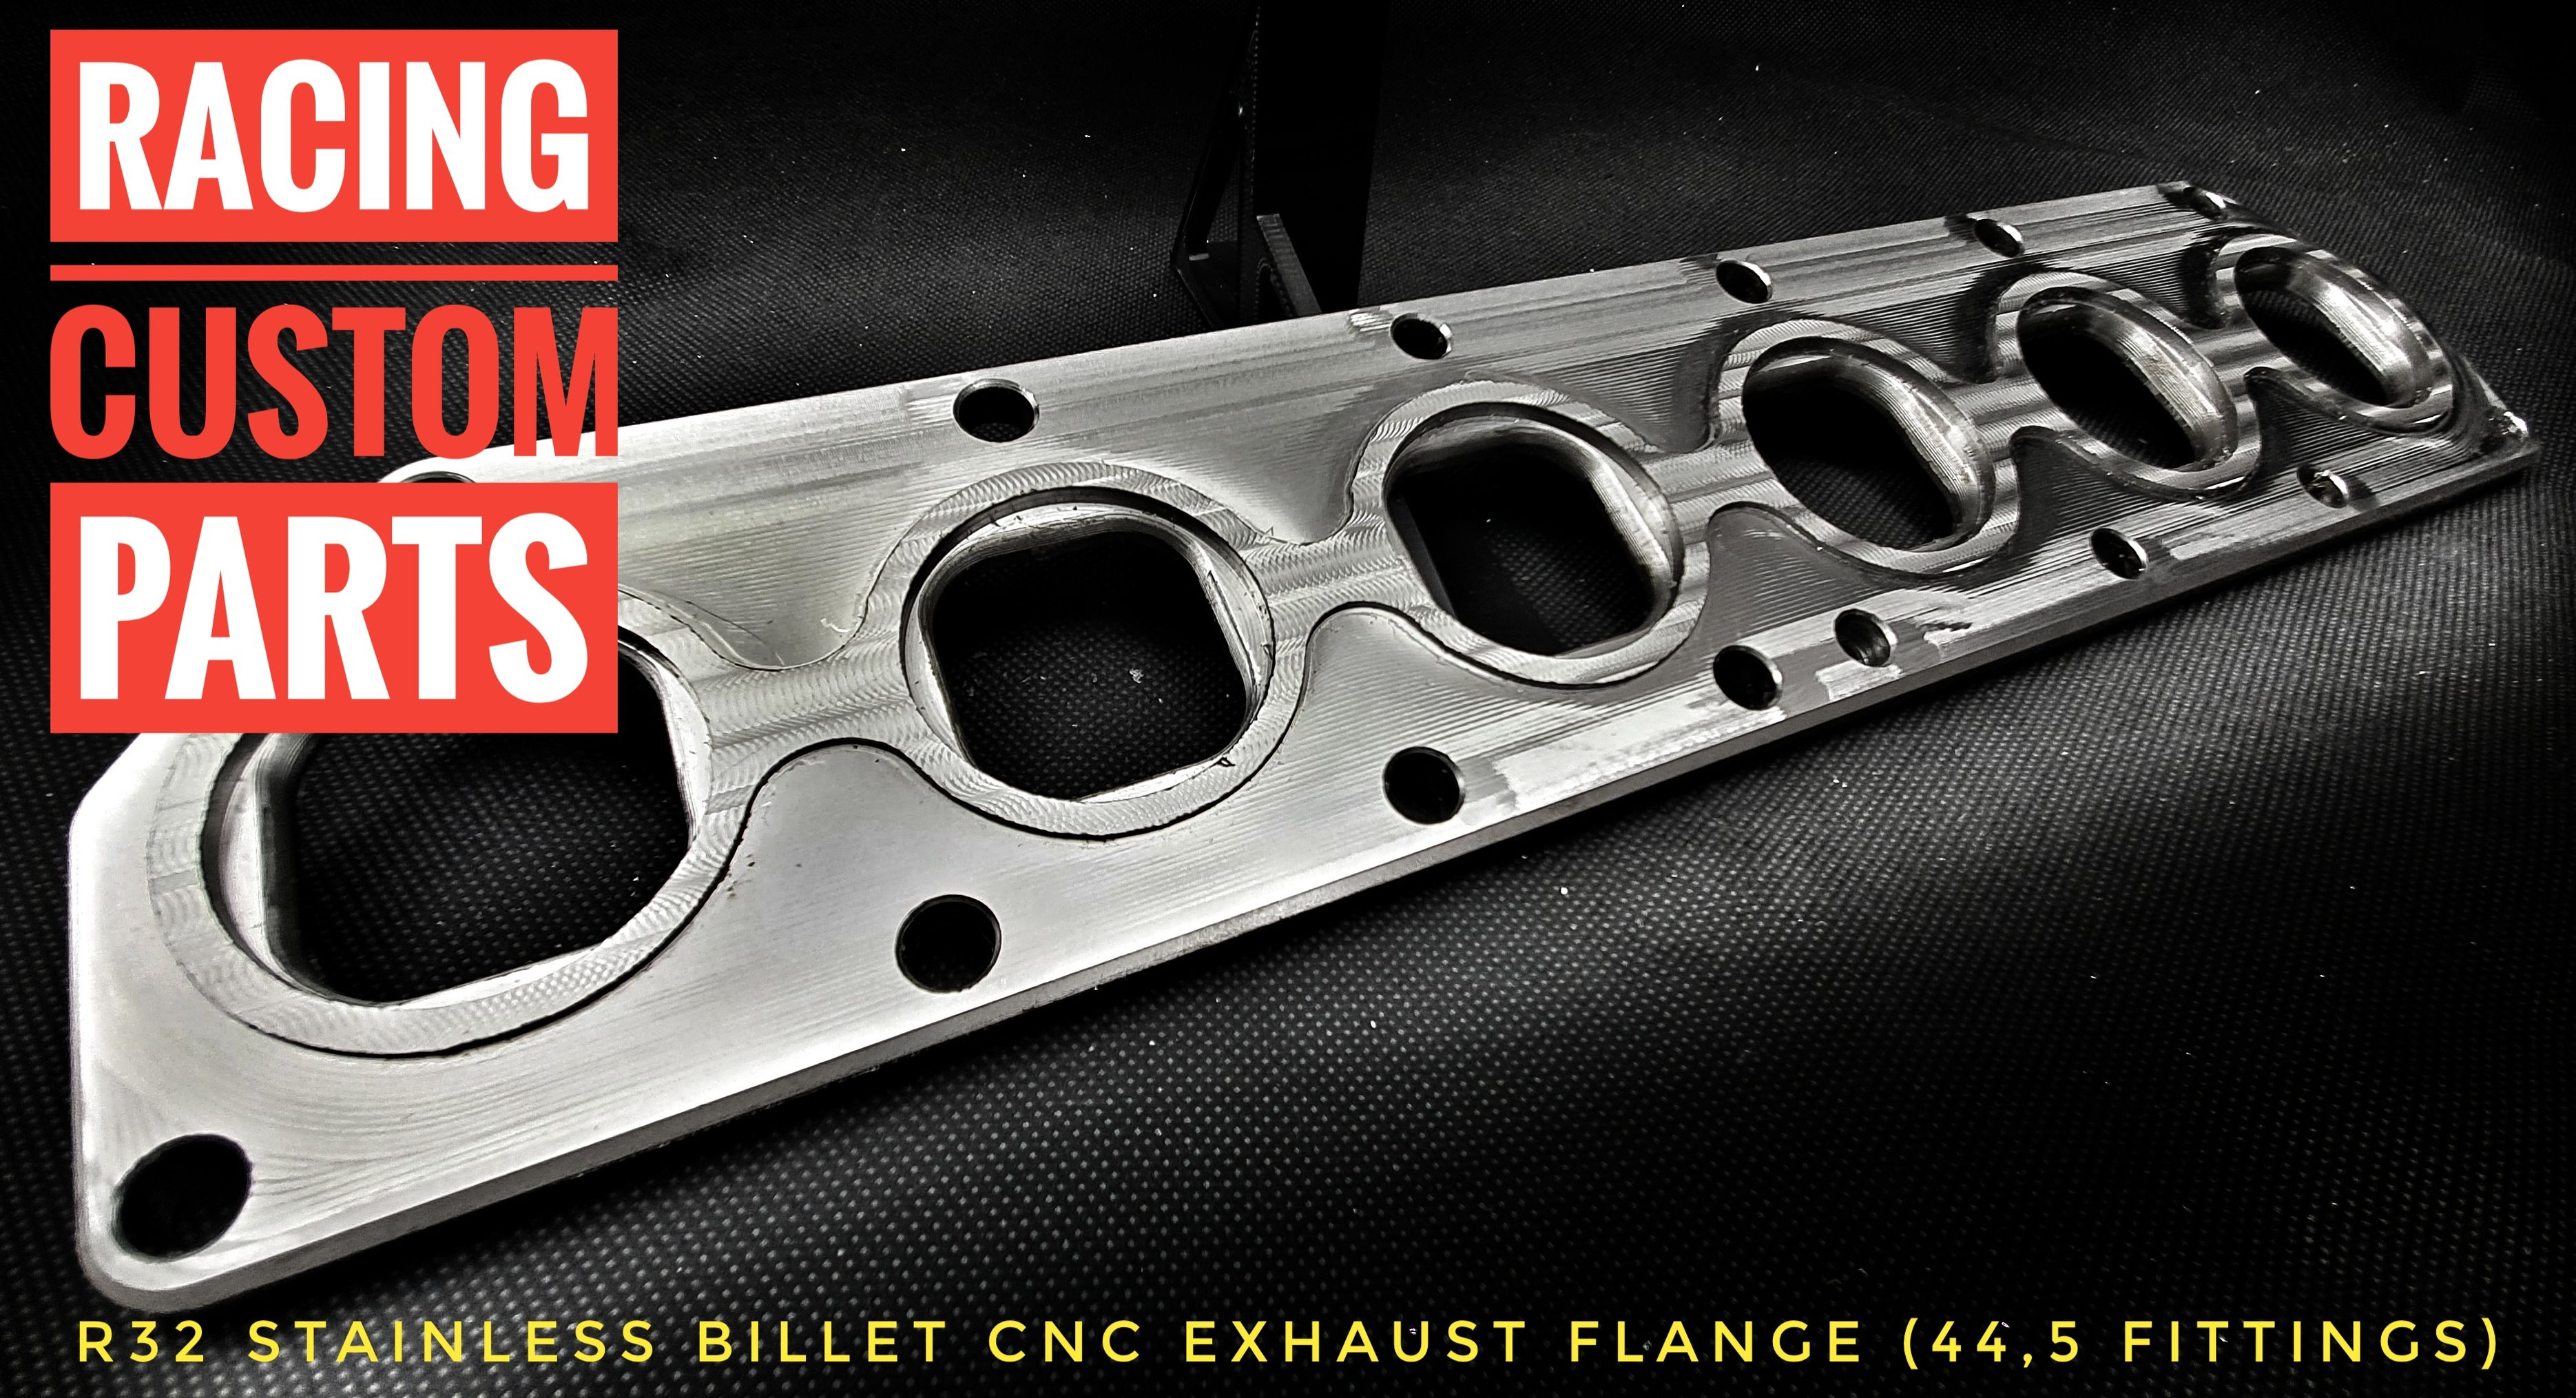 R32 3,2 v6 audi vw stainless steel exhaust plate billet cnc racing custom parts turbo